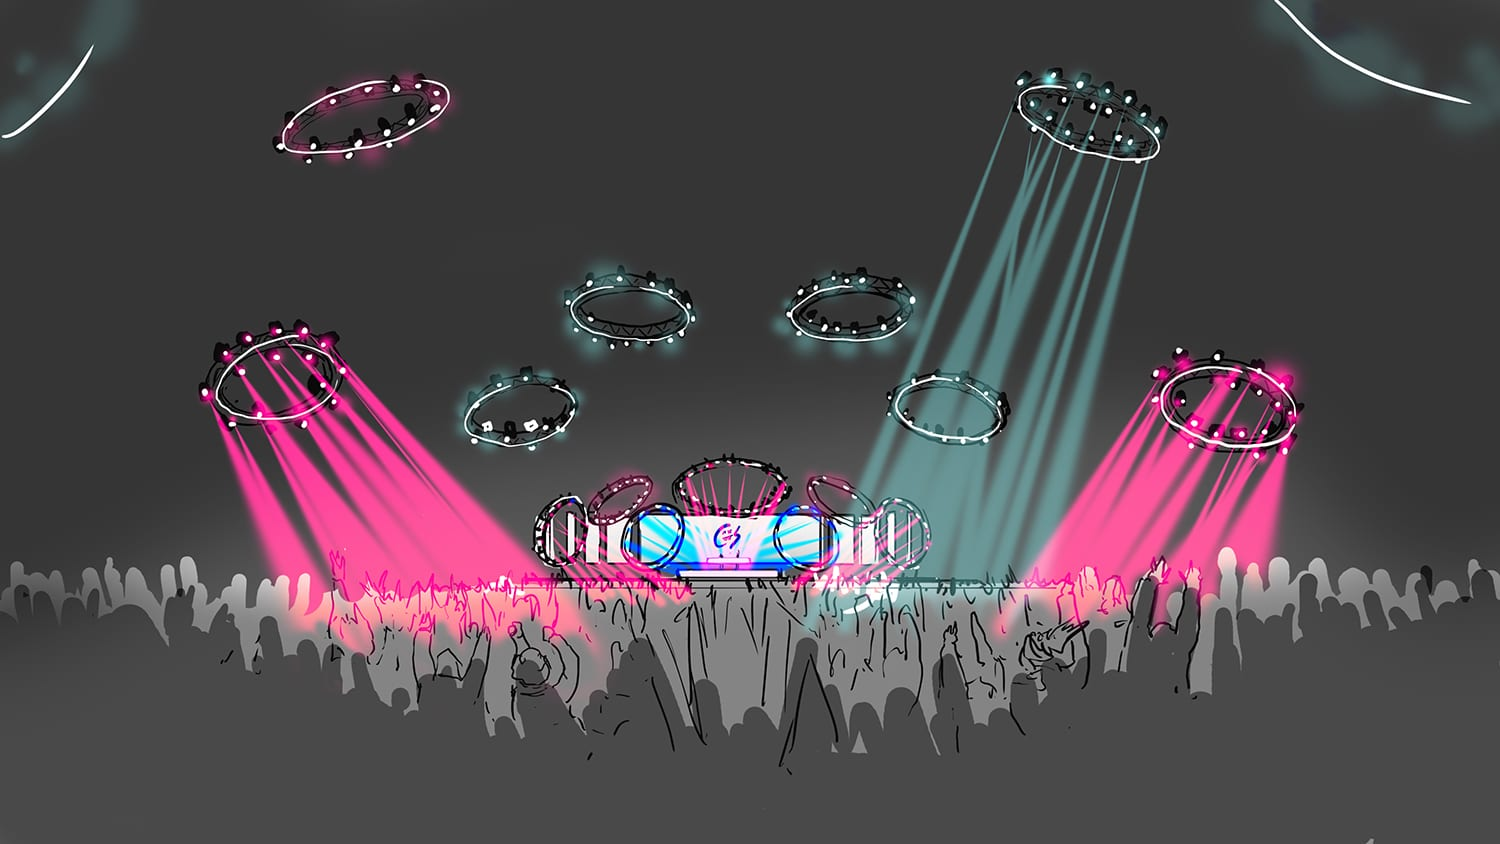 The Chainsmokers NYE ring lights